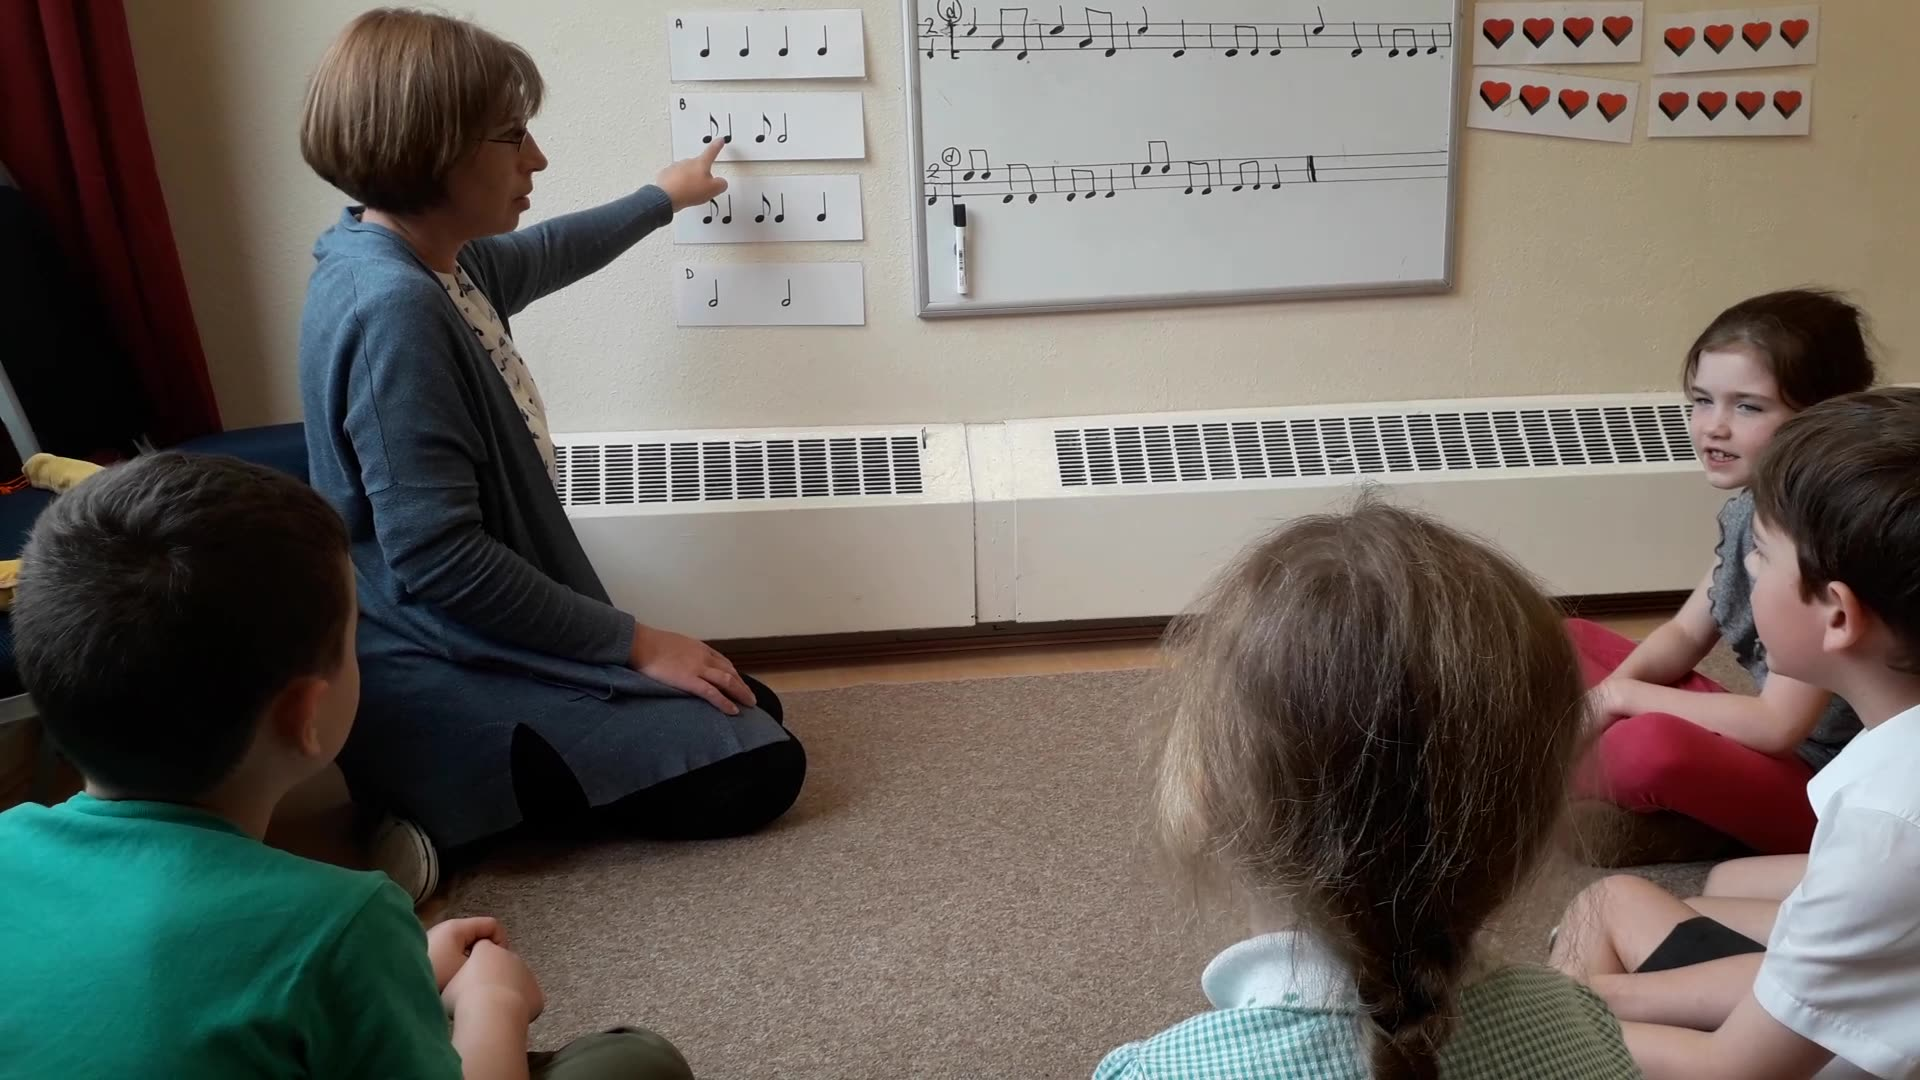 6-7 year olds read syncopated music